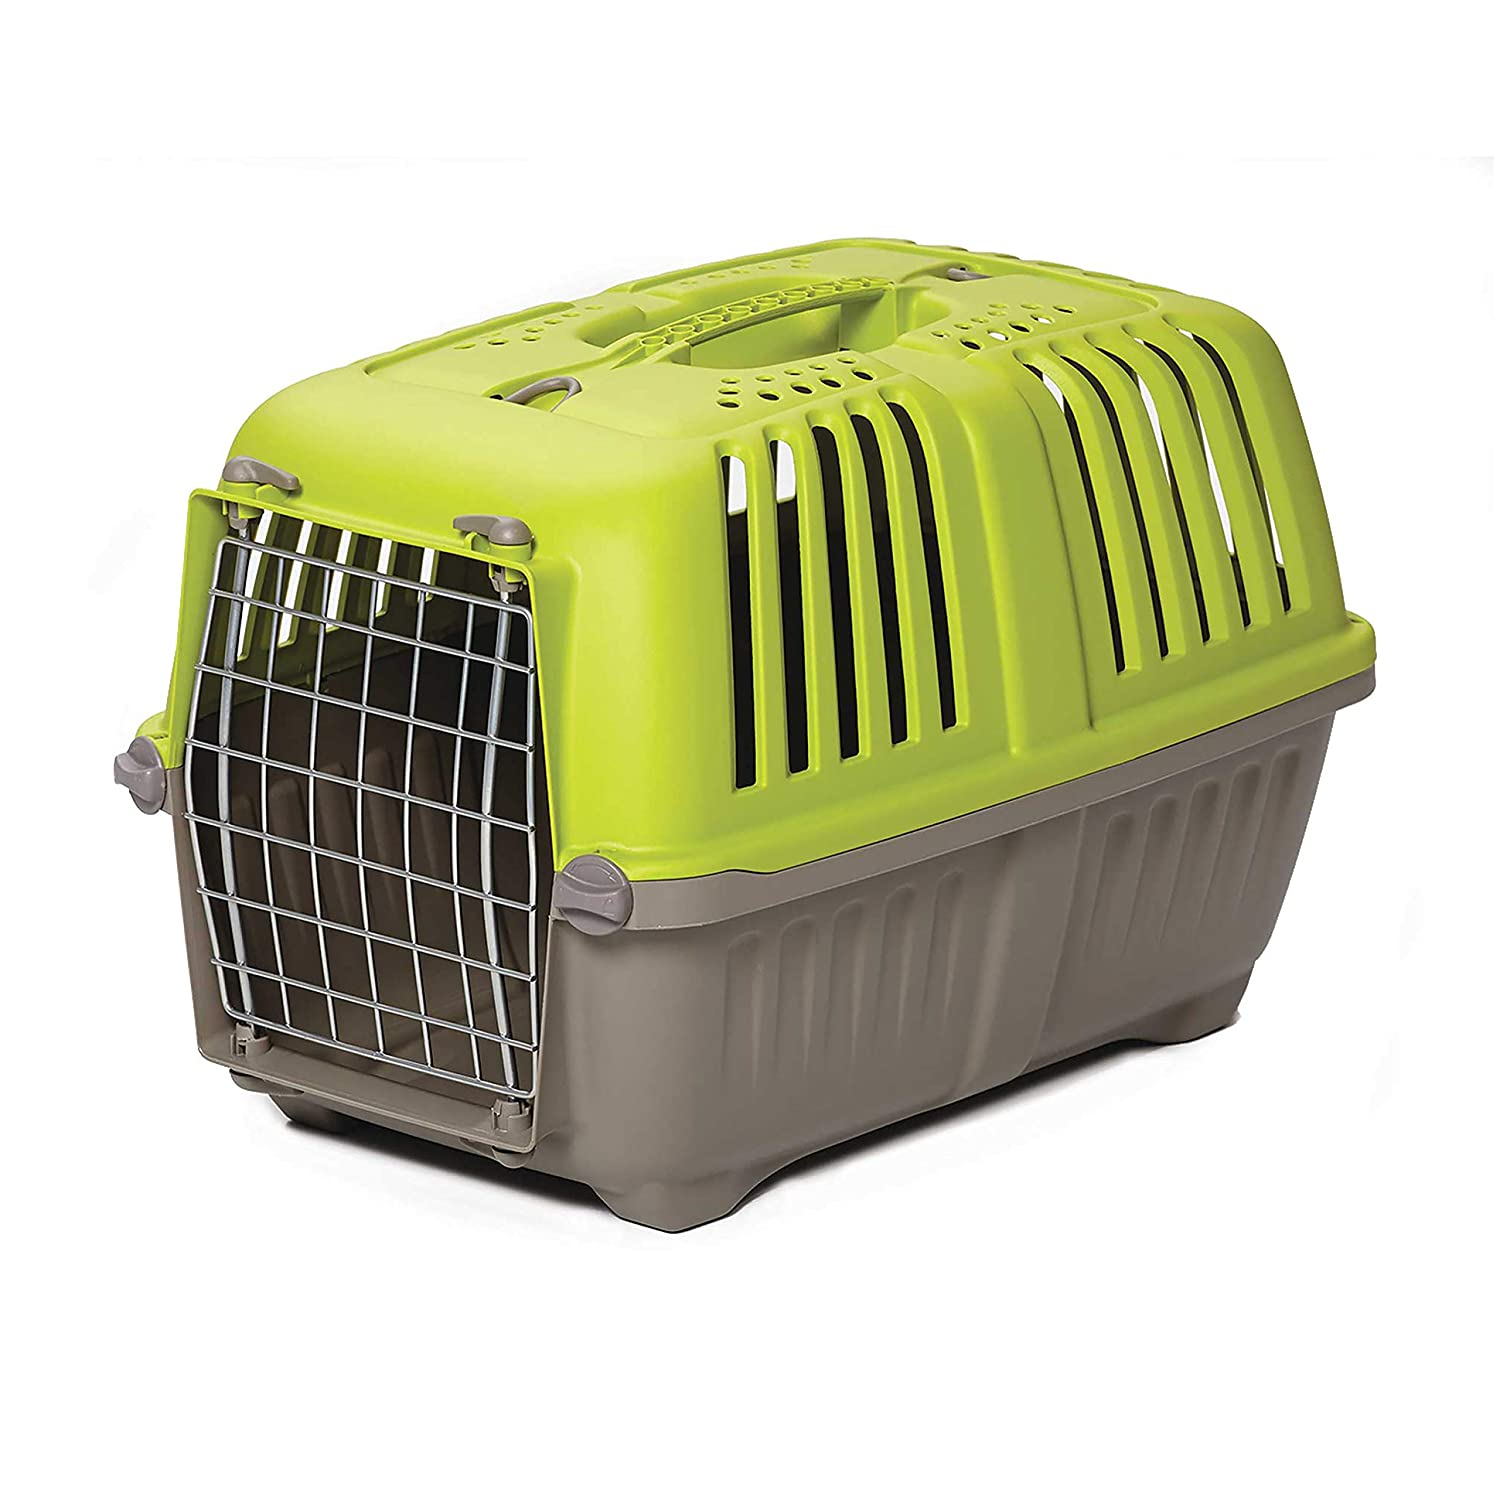 Pet Carrier  Hard-Sided Dog Carrier, Cat Carrier, Small Animal Carrier in Green   Inside Dims 17.91L x 11.5W x 12H & Suitable for Tiny Dog Breeds   Perfect Dog Kennel Travel Carrier for Quick Trips